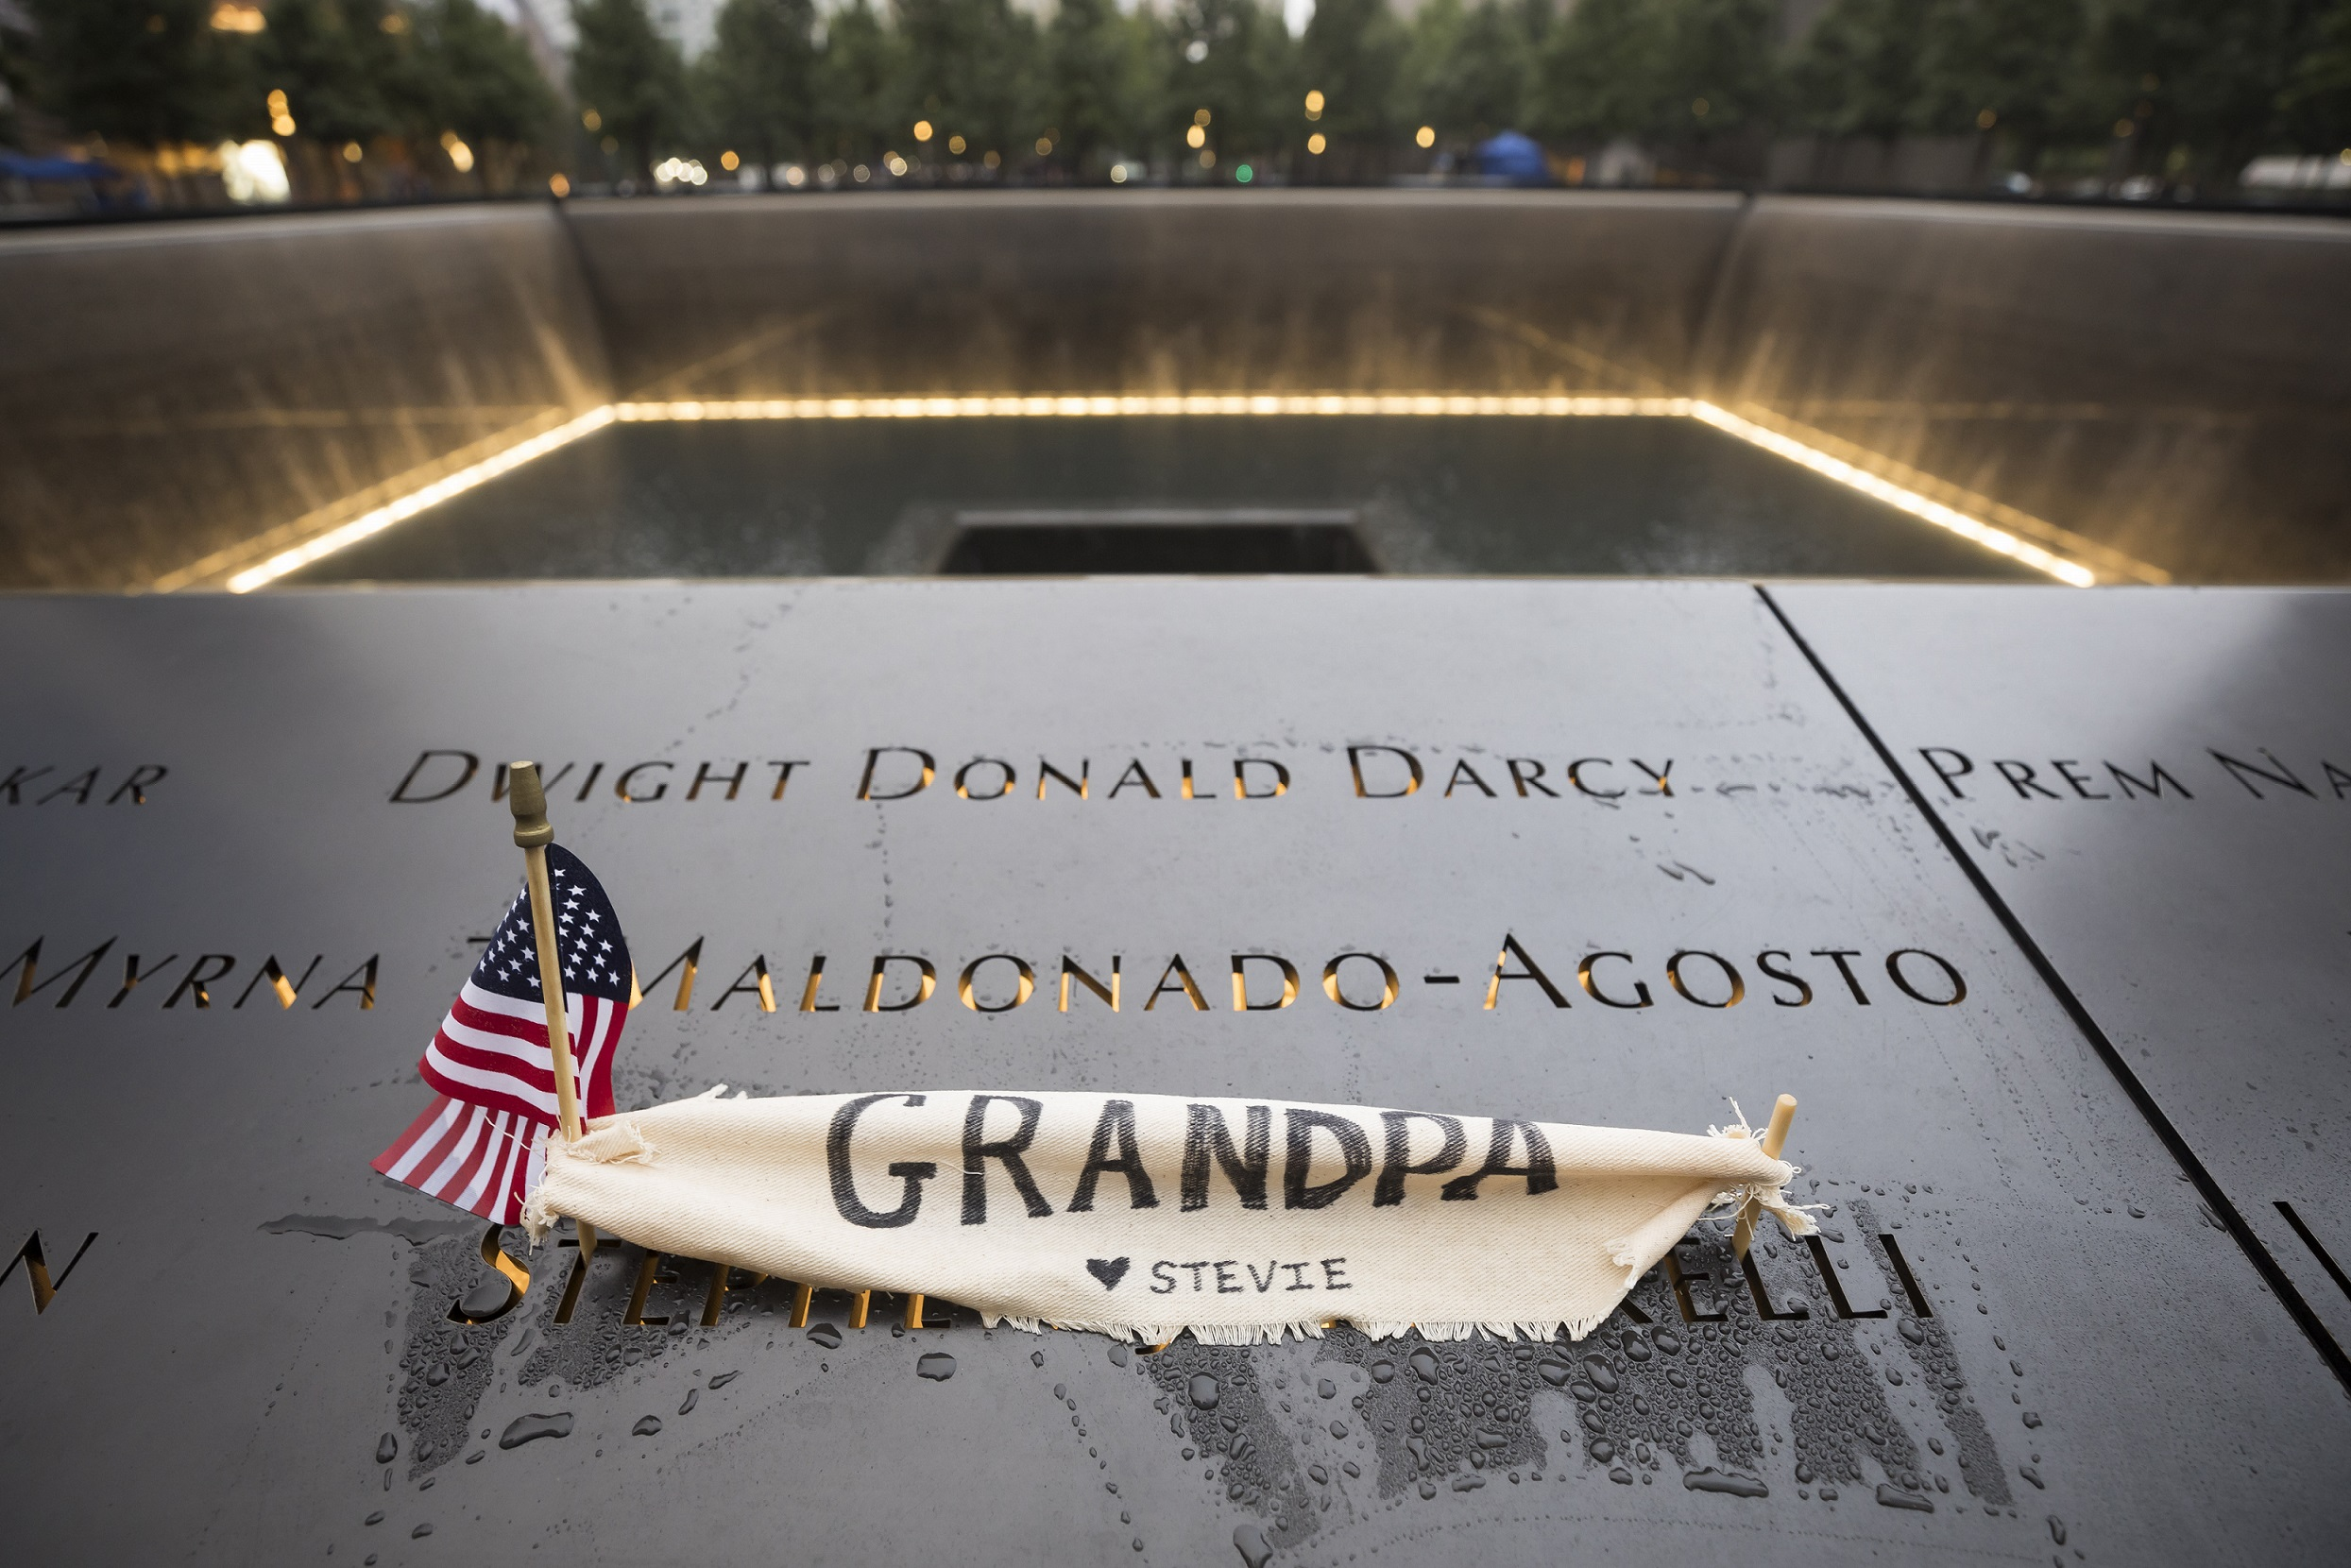 "A small American flag and a hand-written note have been placed at a victim's name on a bronze parapet at the Memorial. The note is written on a piece of cloth and reads ""Grandpa."" Water cascades down a lit reflecting pool in the background."